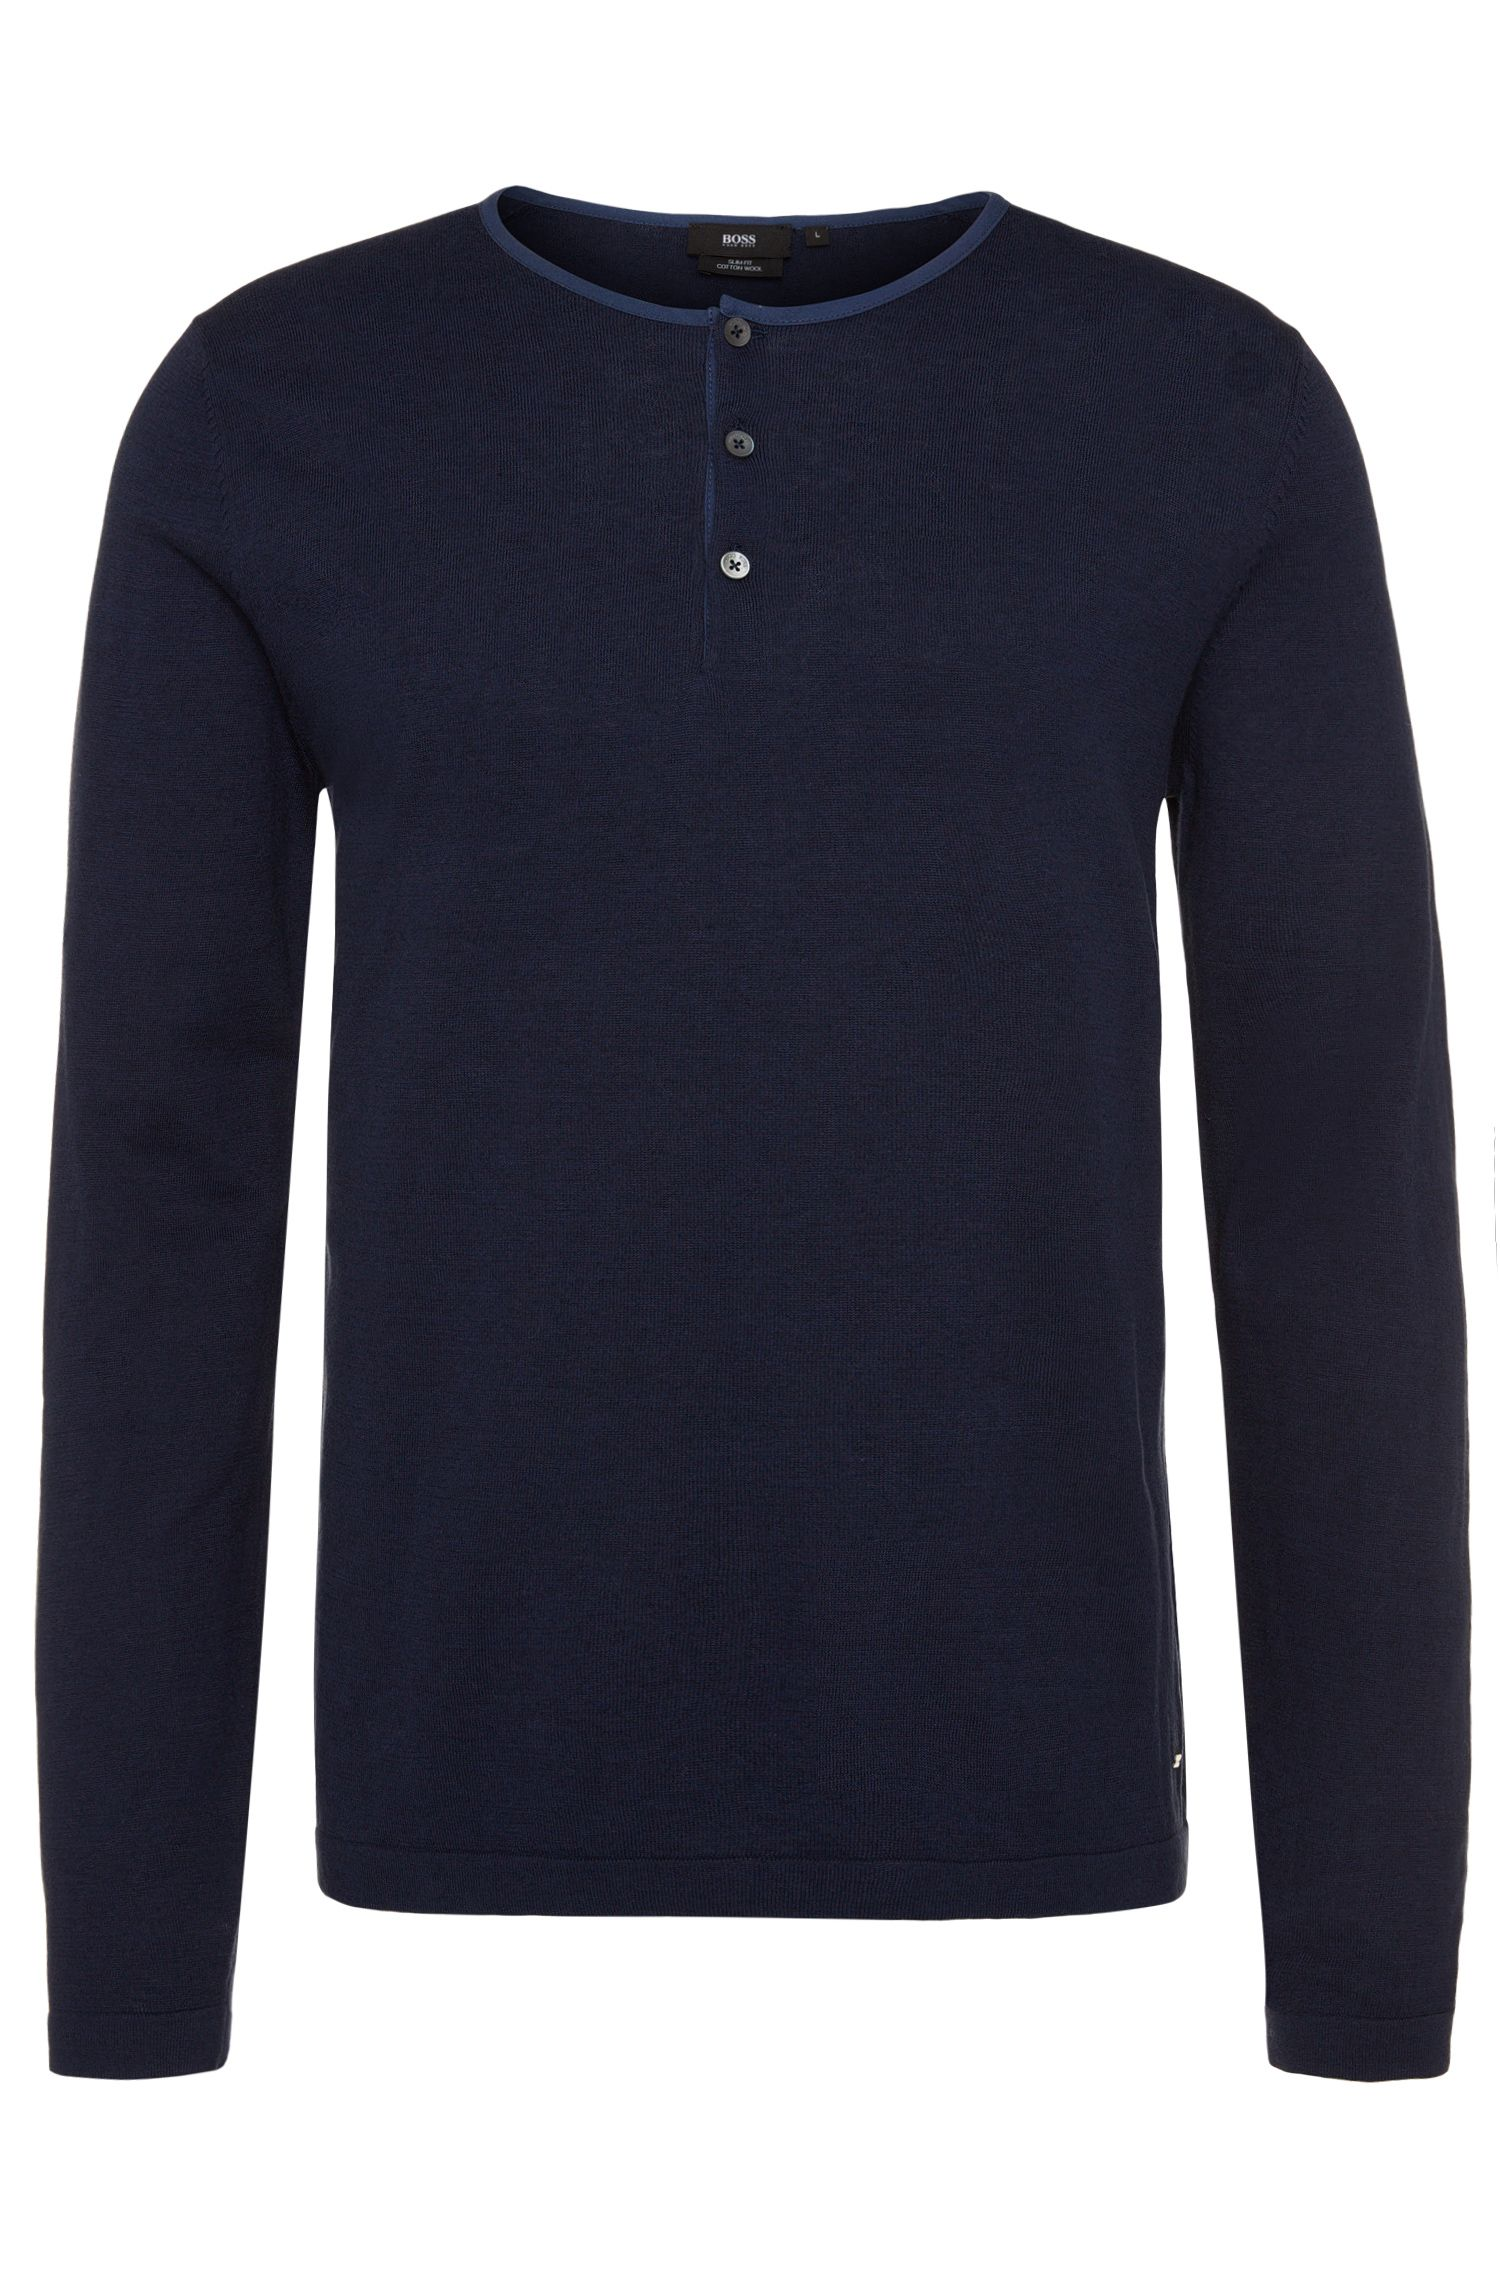 Slim-fit sweater in cotton blend with a button placket: 'Heiko'